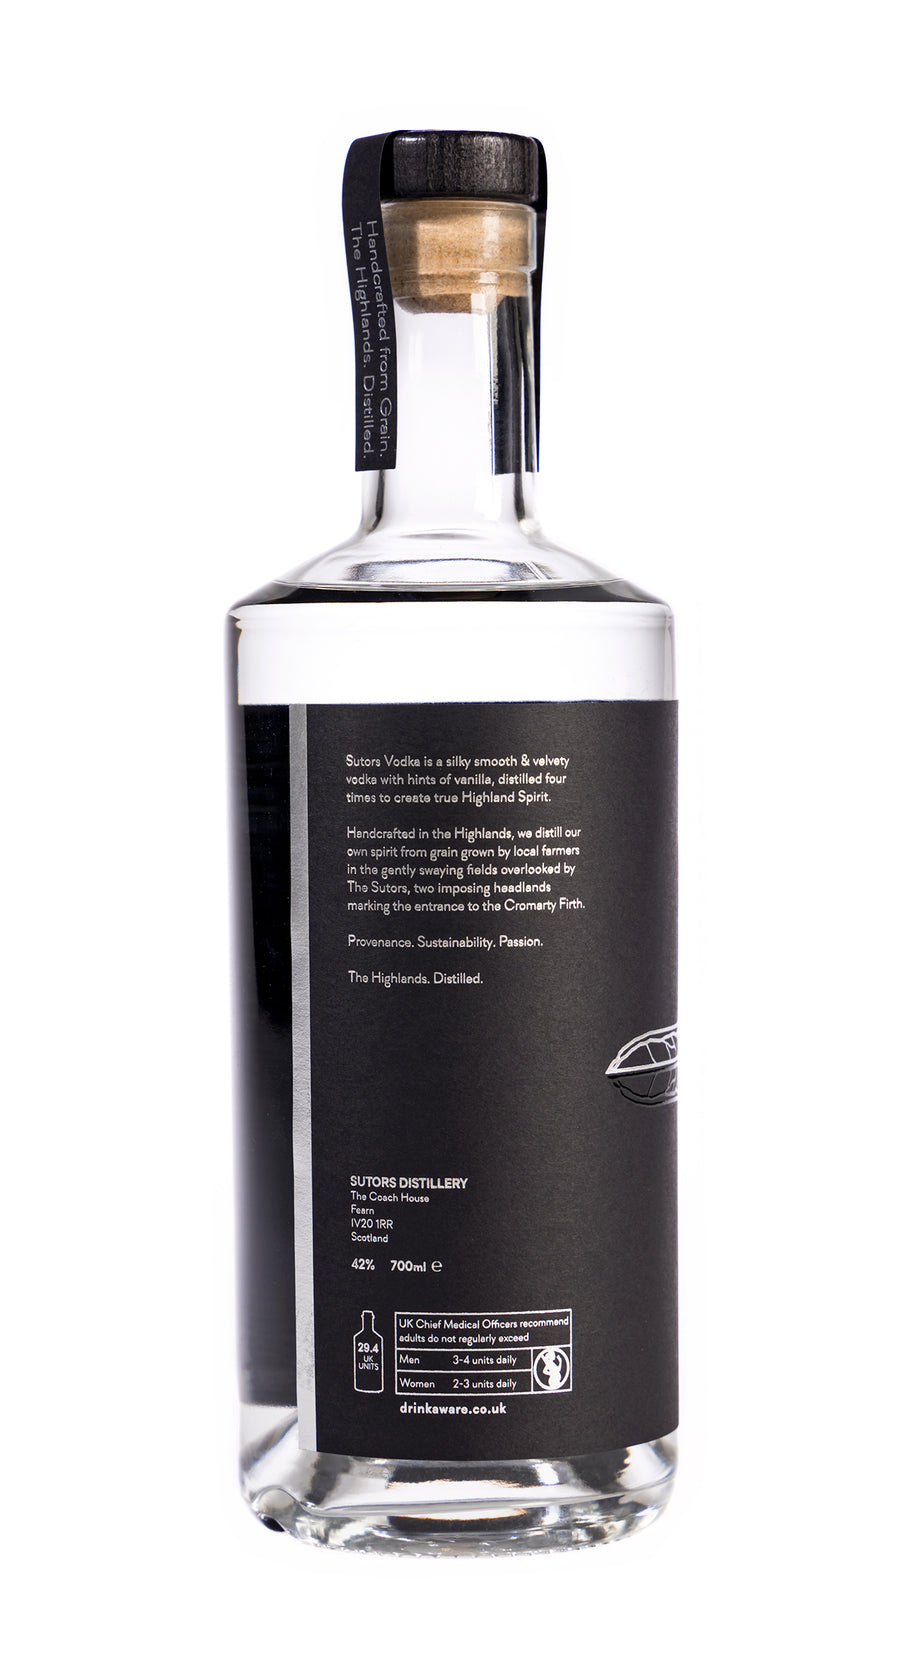 Sutors Vodka 700ml 42% ABV